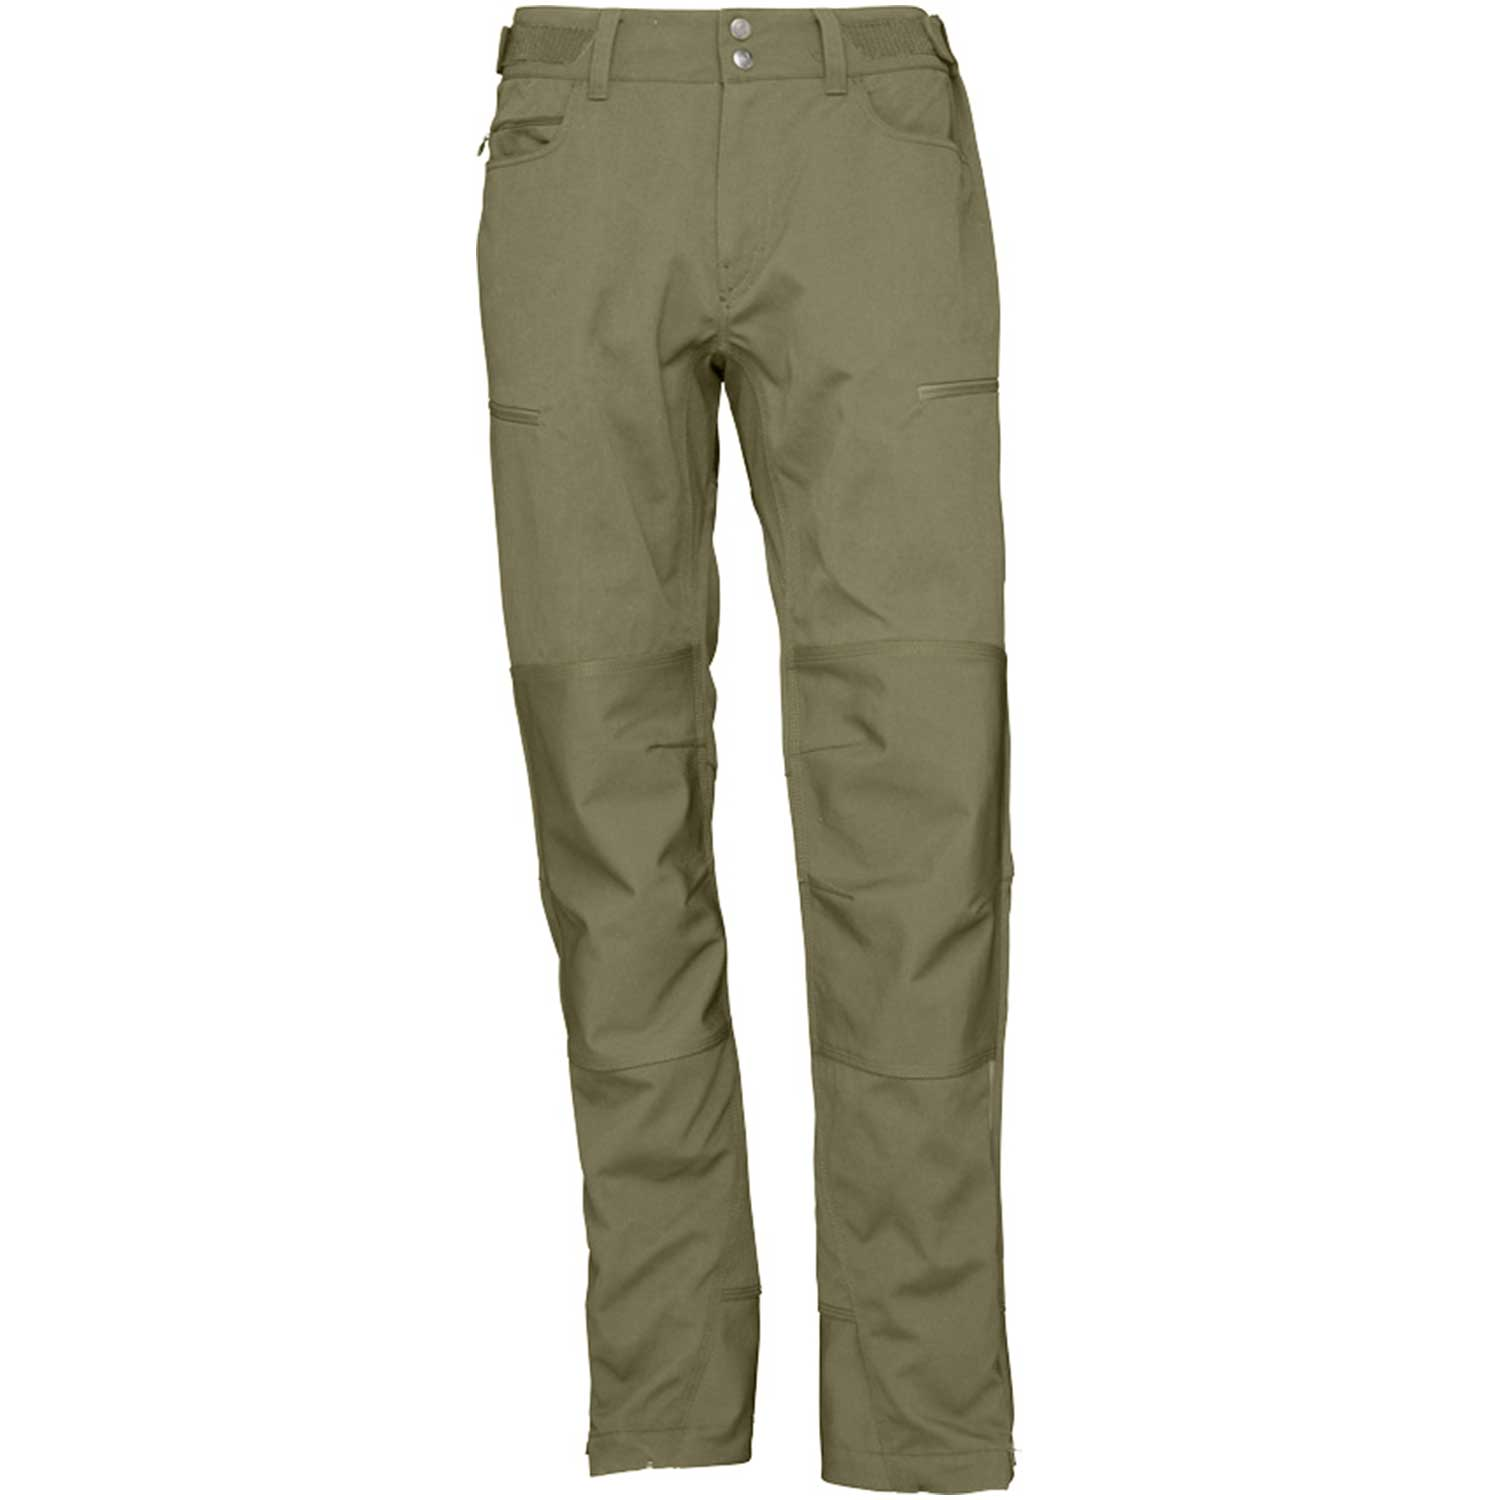 kvinnherad heavy duty Pants (M)